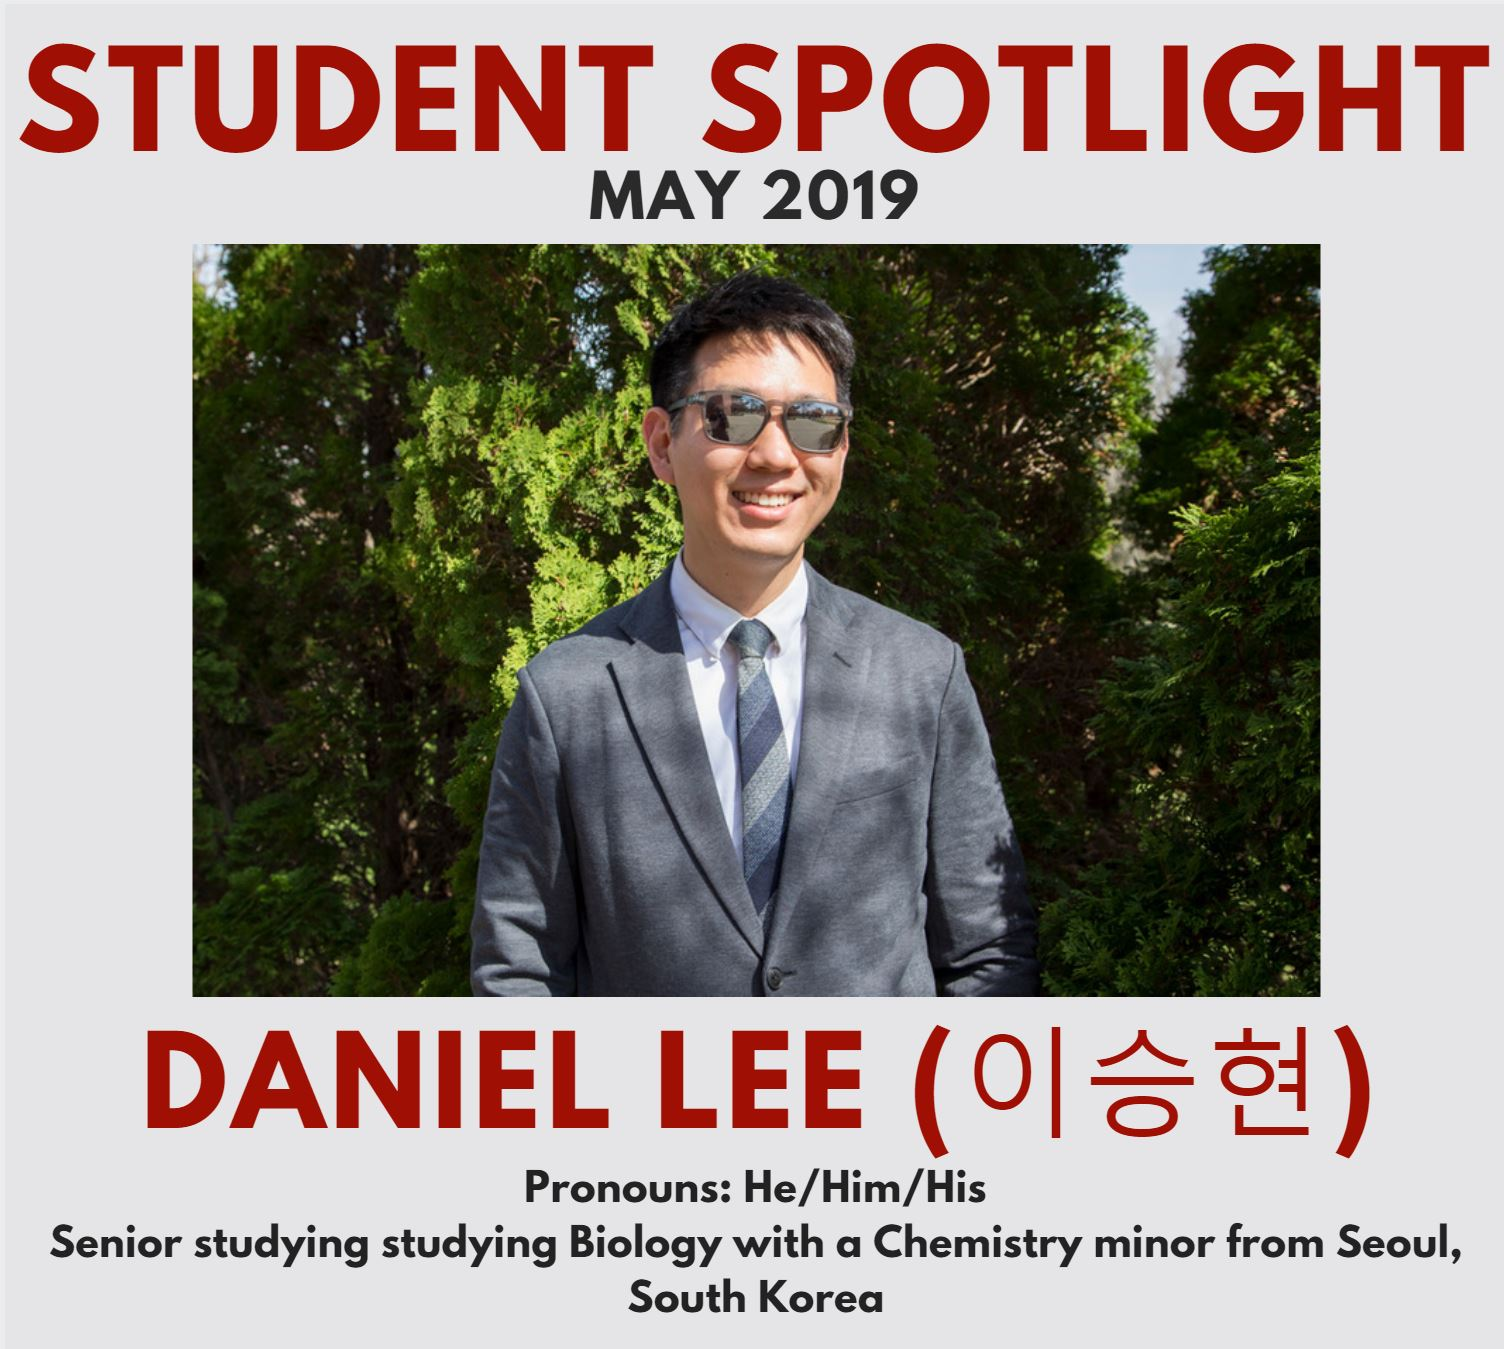 This is a photo of the May 2019 student spotlight, Daniel Lee. Daniel is a senior from Seoul, South Korea studying Biology with a Chemistry minor. He/Him/His pronouns. Daniel is outside in this photo, wearing a grey suit and sunglasses.